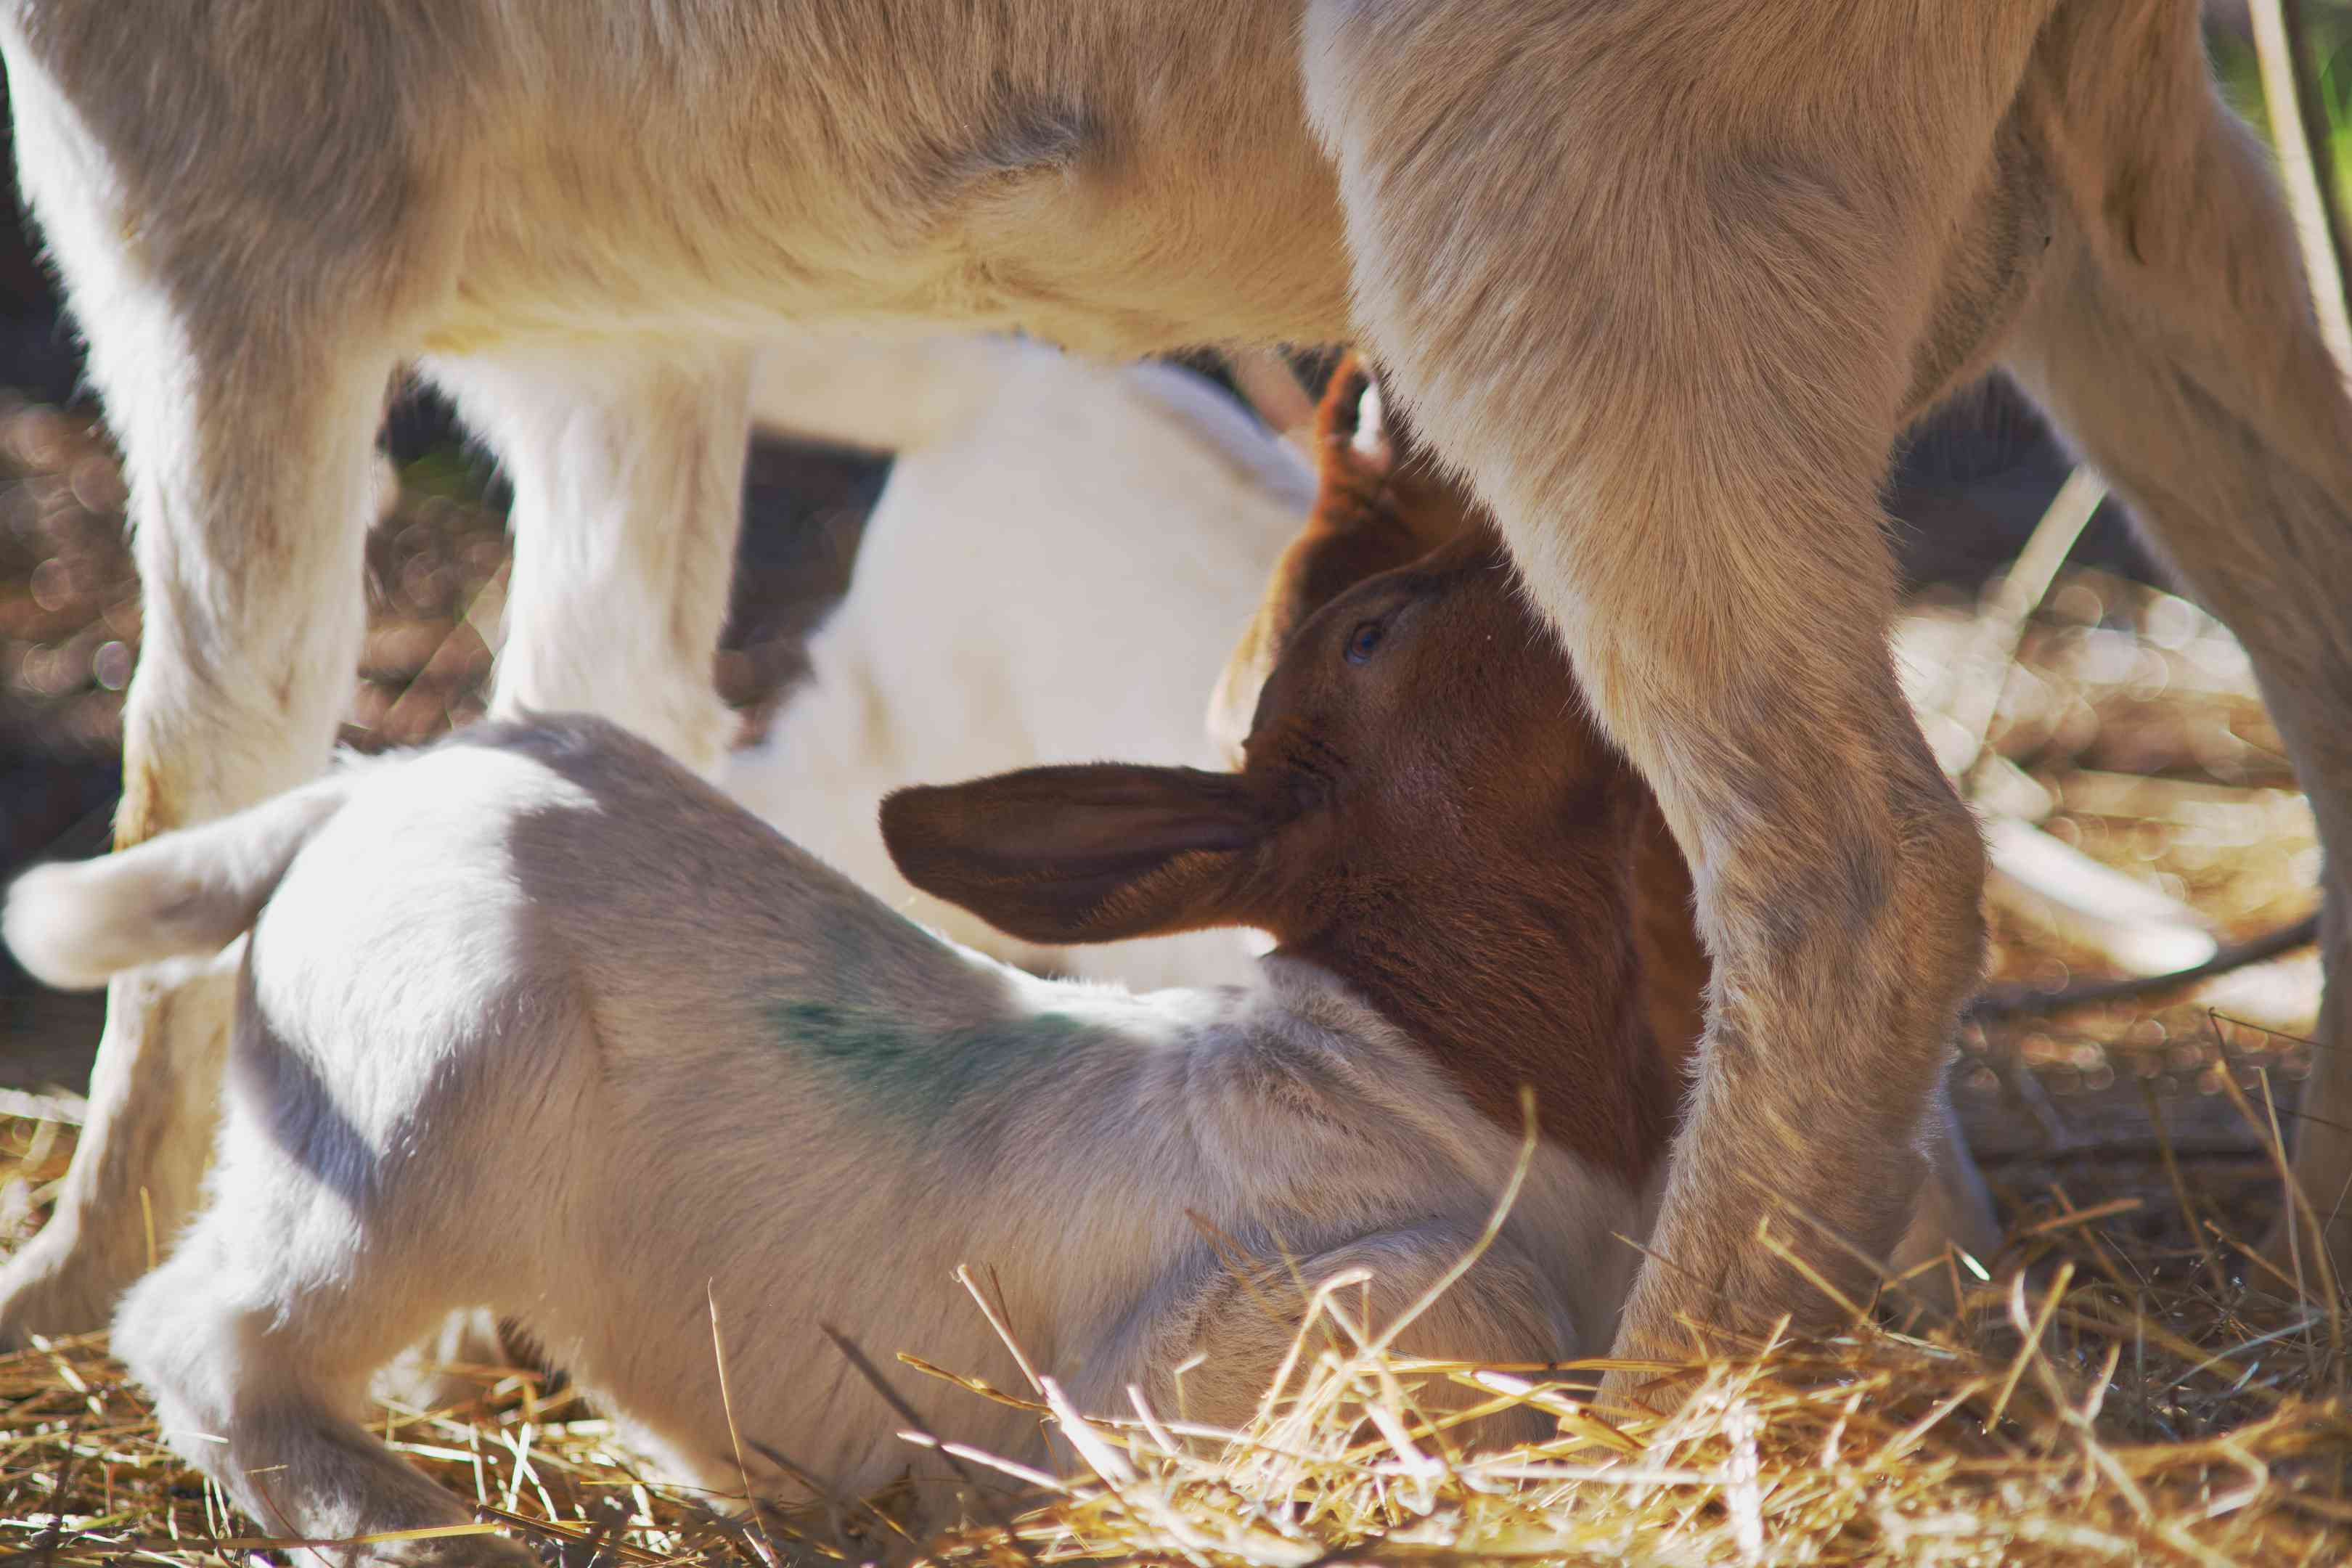 up close shot of momma goat feeding baby goat perched under legs in hay